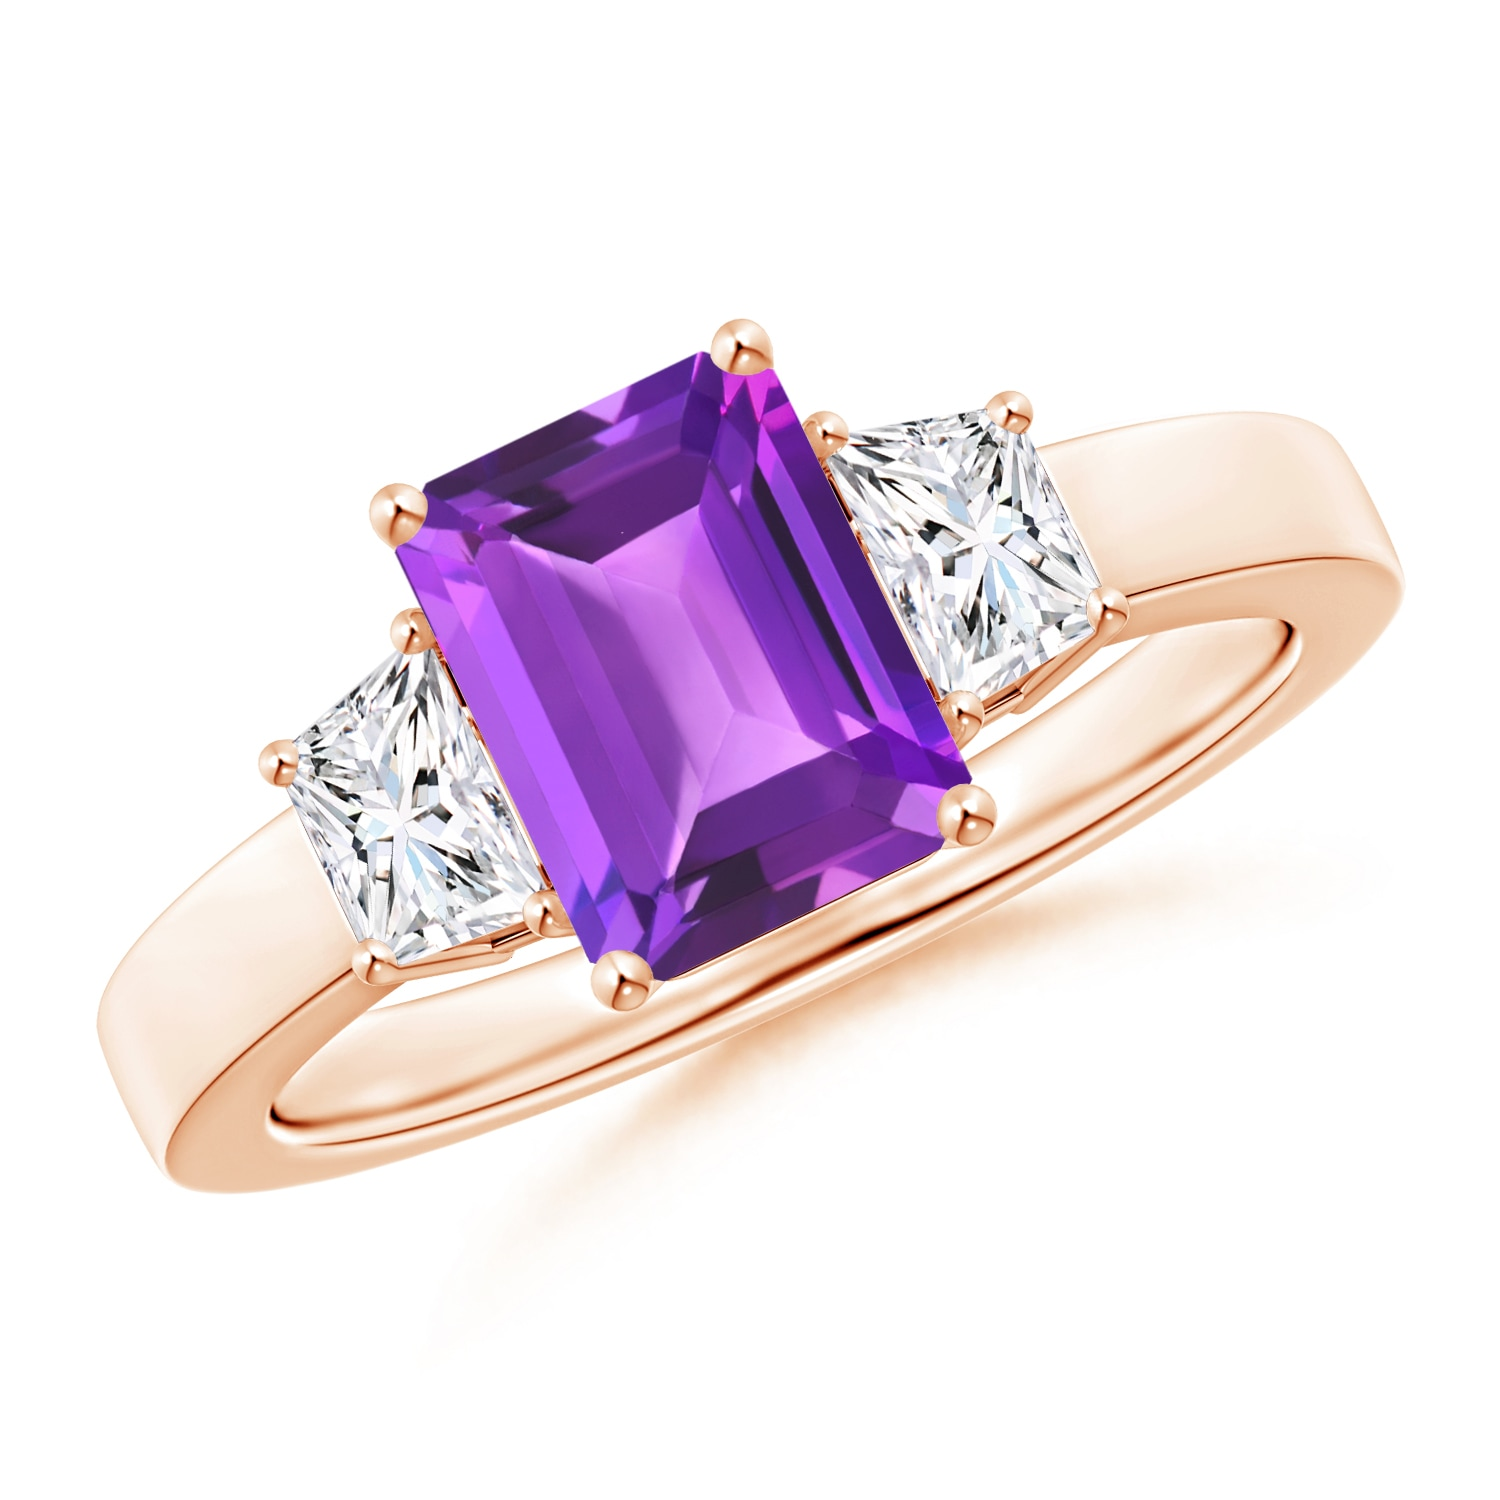 Angara Emerald-Cut Amethyst and Diamond Three Stone Ring in Platinum sdt4PWF1jR